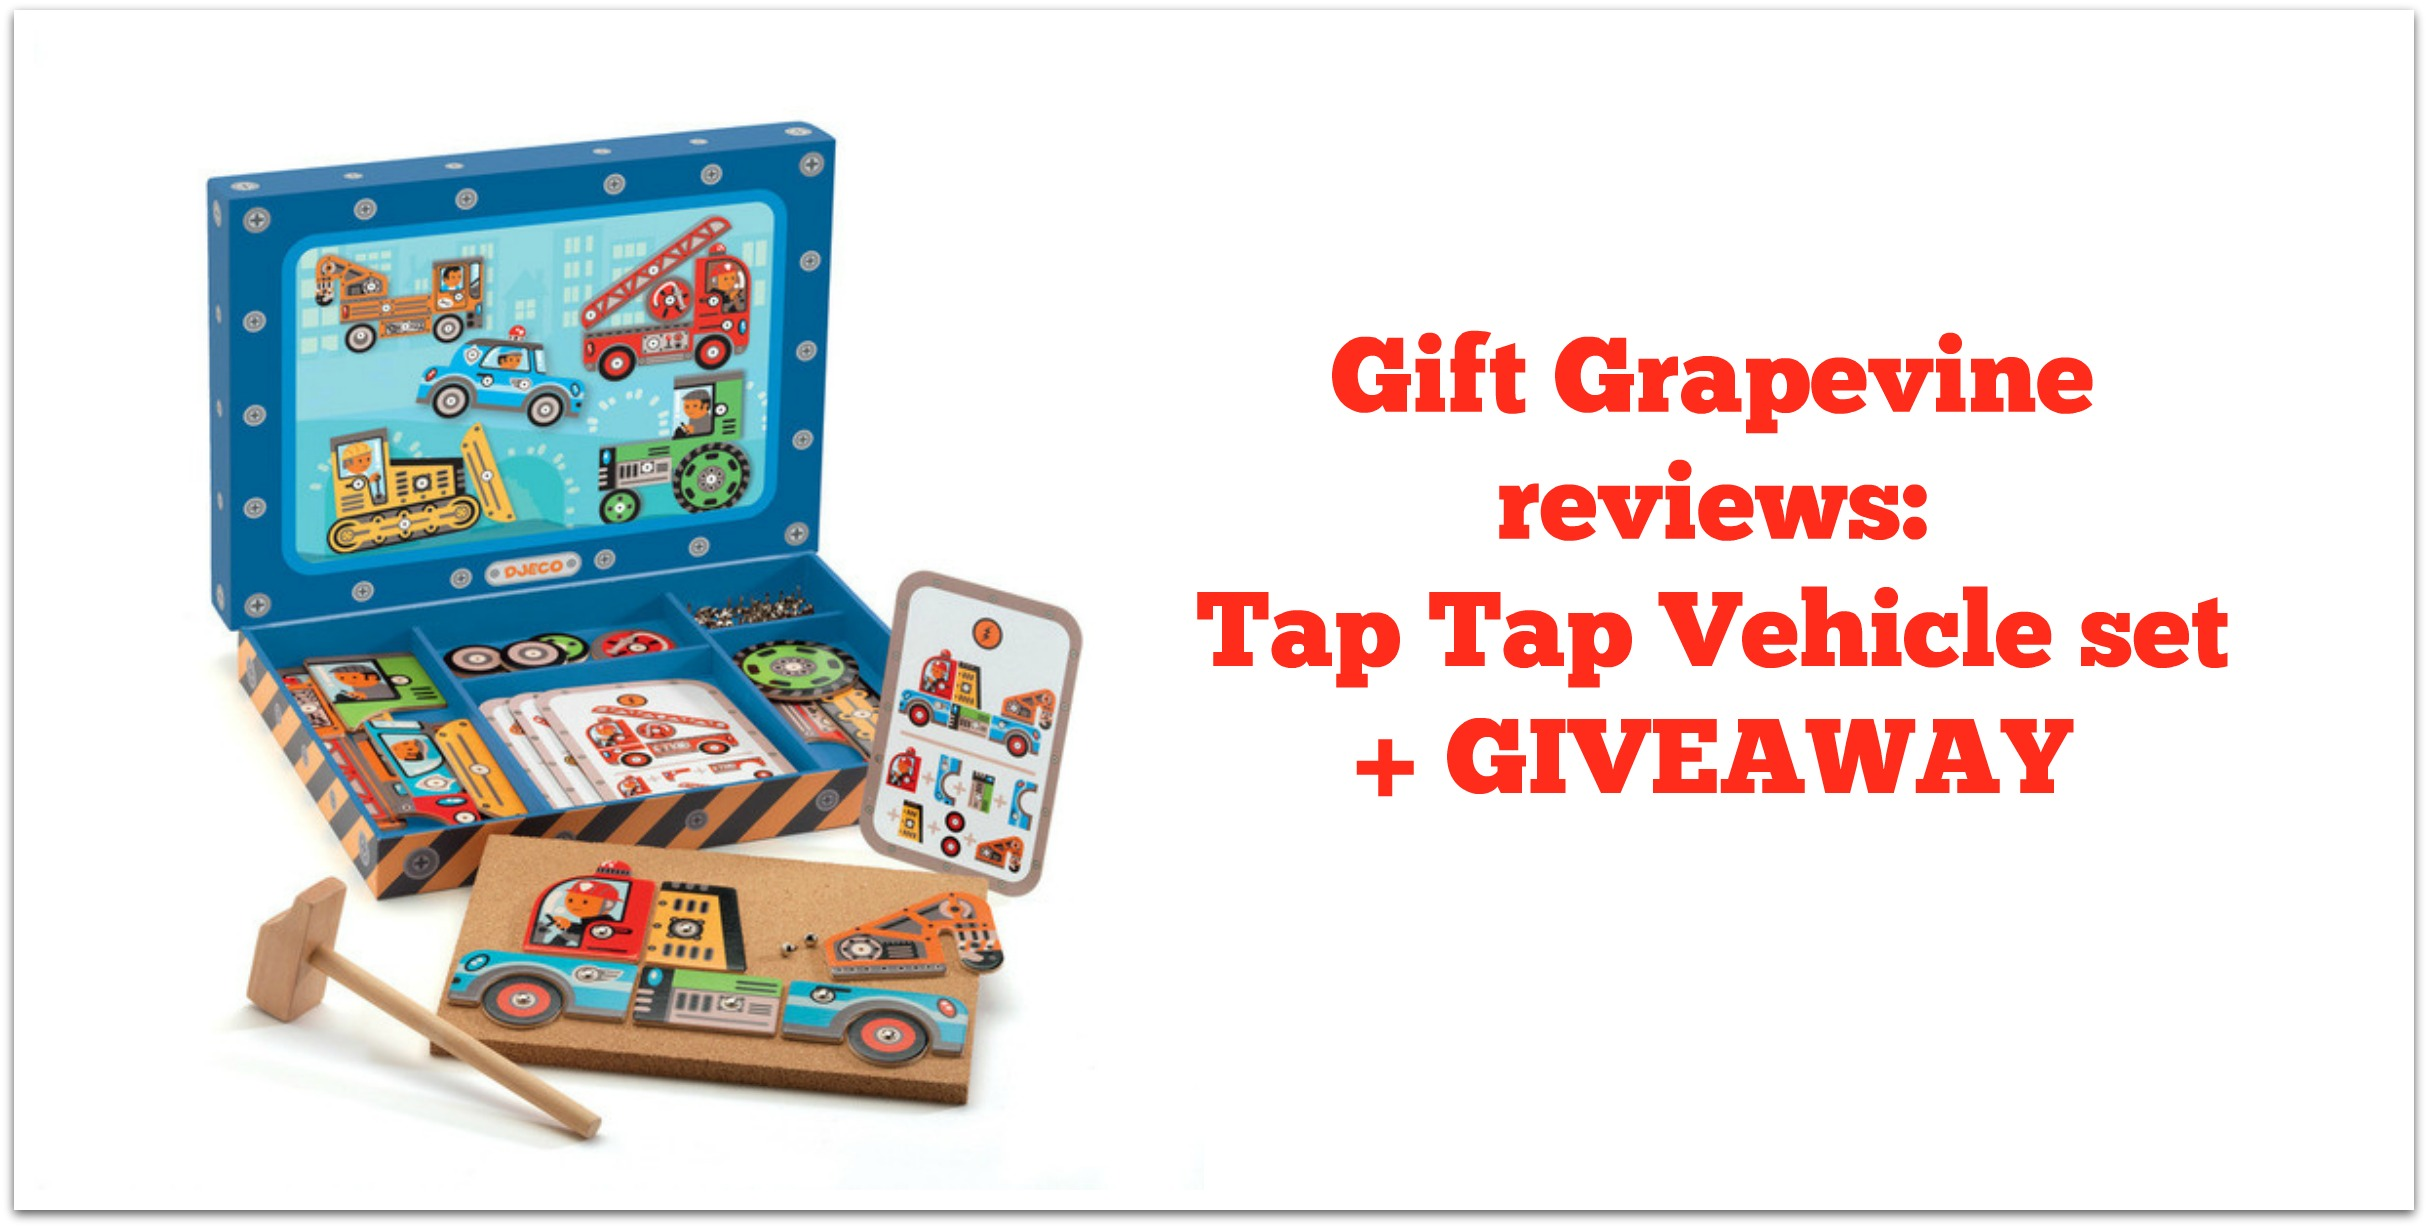 Gift Grapevine reviews: Tap Tap Vehicle set + GIVEAWAY